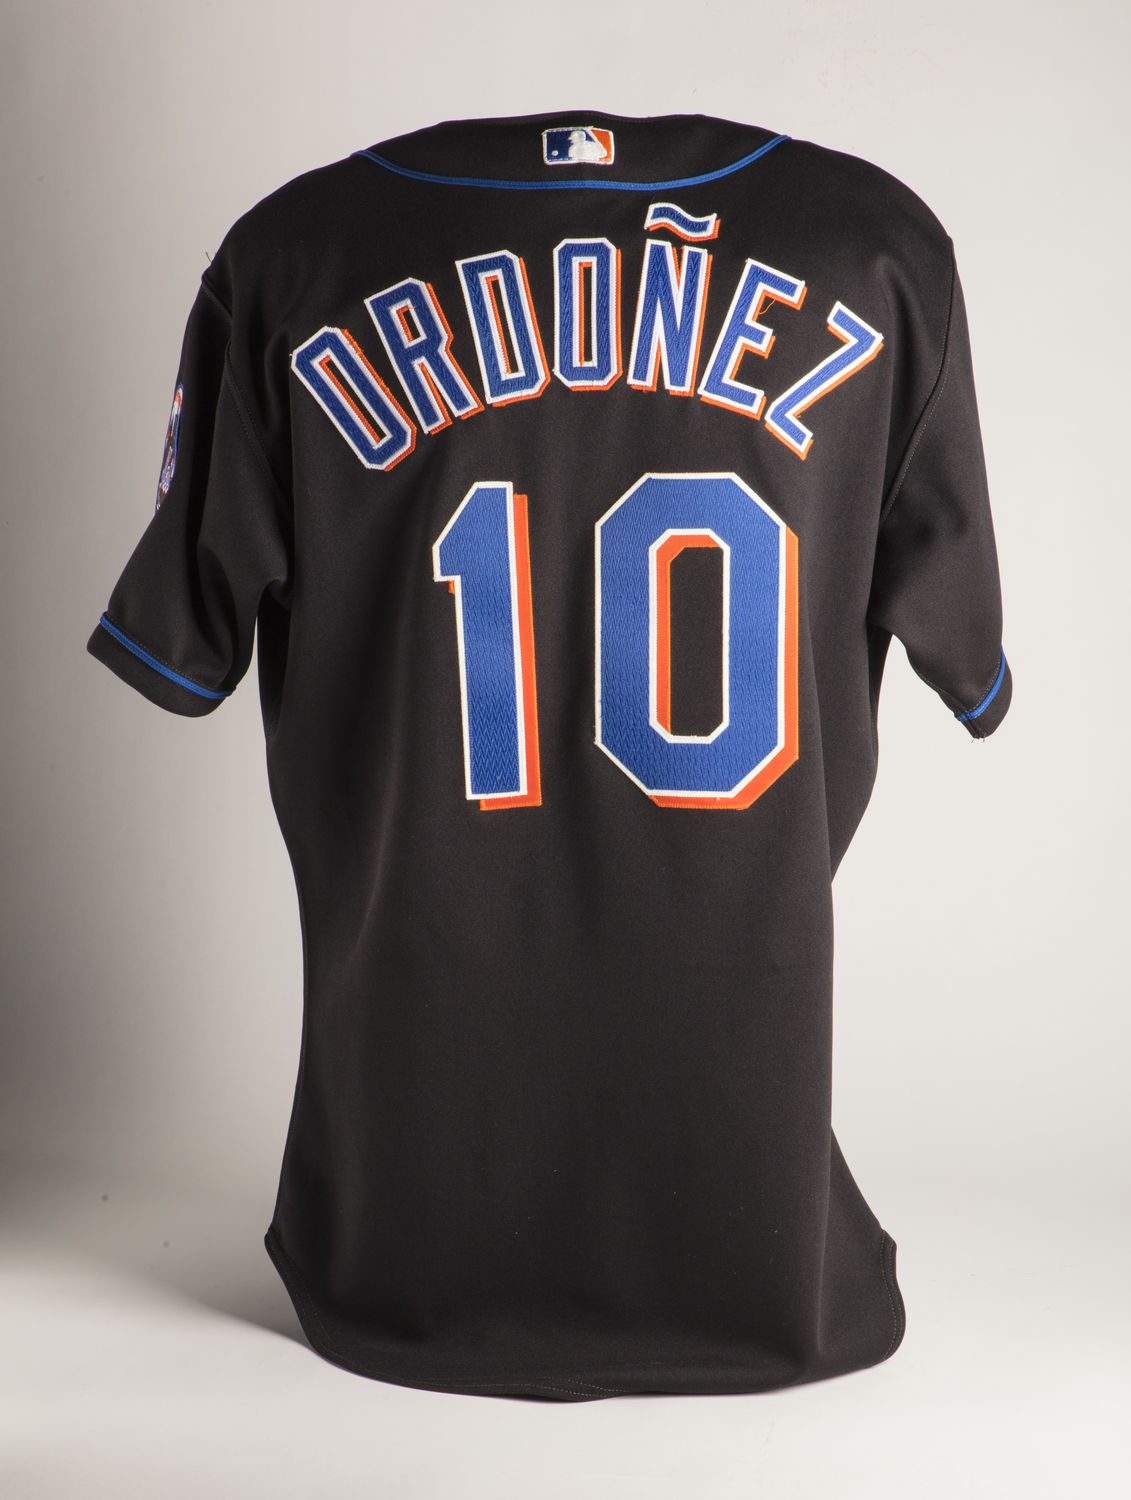 b7d79b9647f A 2001 Mets jersey worn by shortstop Rey Ordóñez illustrates the use of  accents on big league jerseys. (Milo Stewart Jr. National Baseball Hall of  Fame and ...